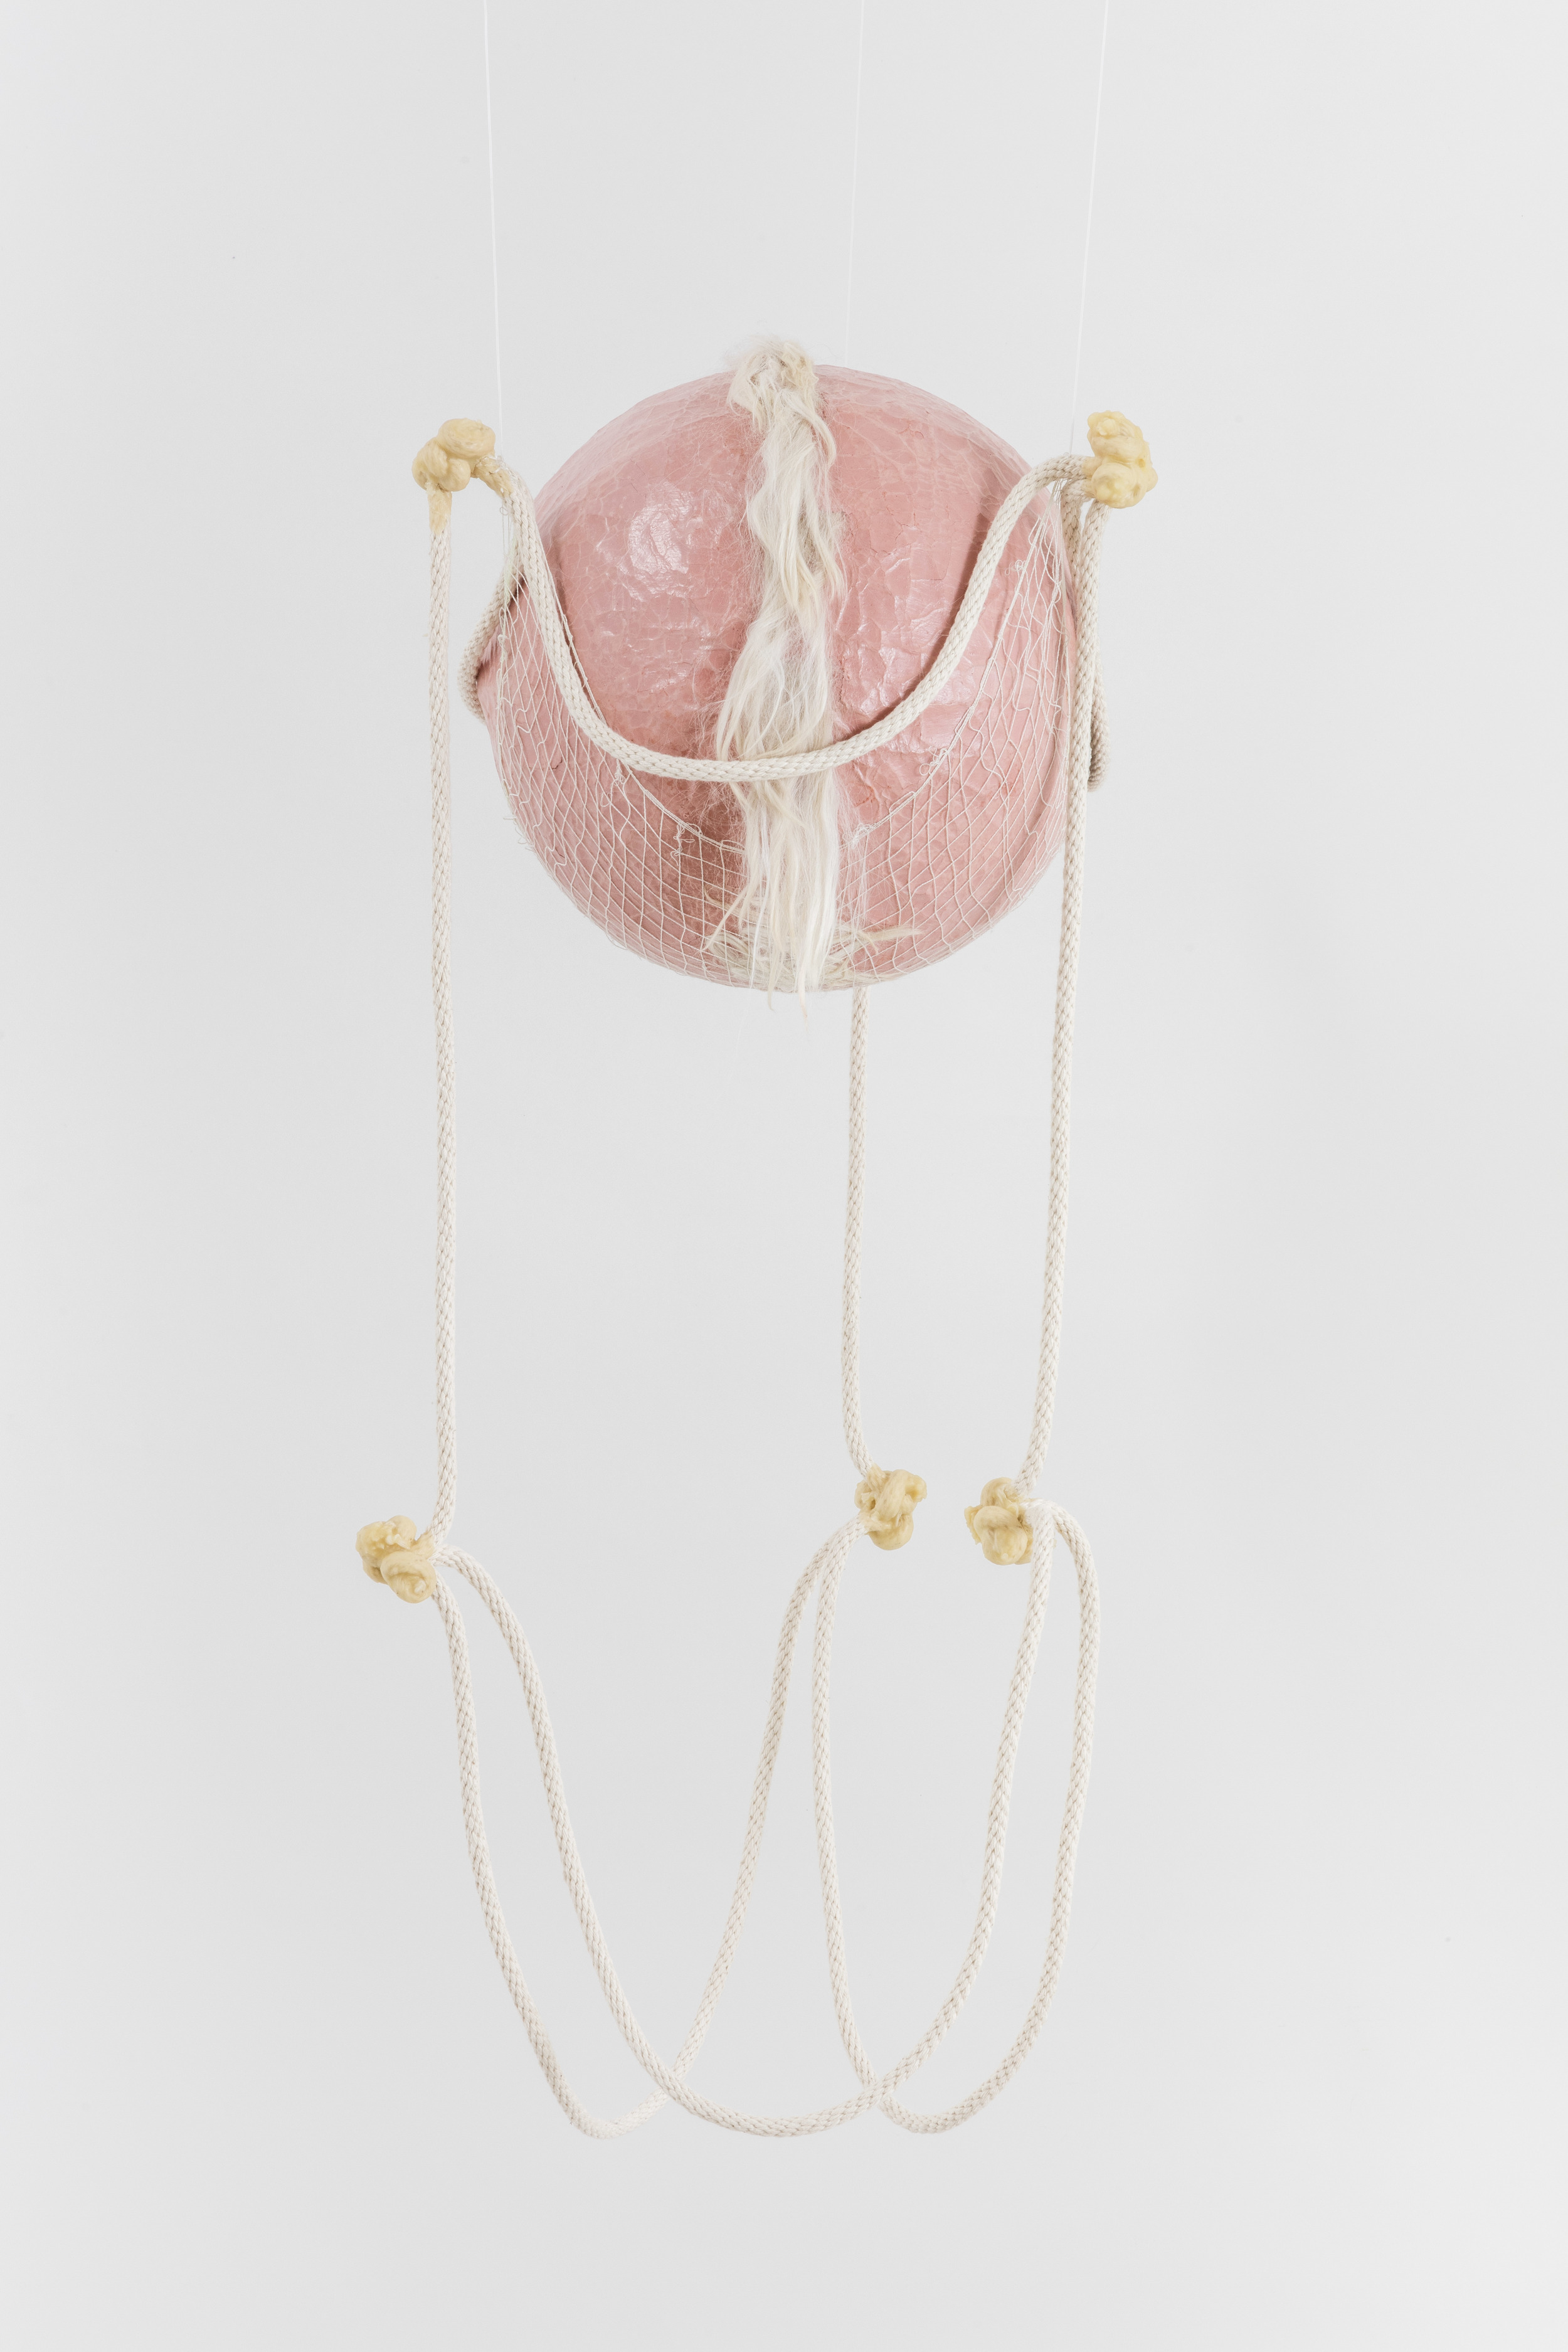 Tanya Aguiniga   Gynic Dispossession 1 , 2016  Cotton rope, cotton thread, canvas, self-drying clay,alpaca and beeswax  30 x 12 x 12 inches